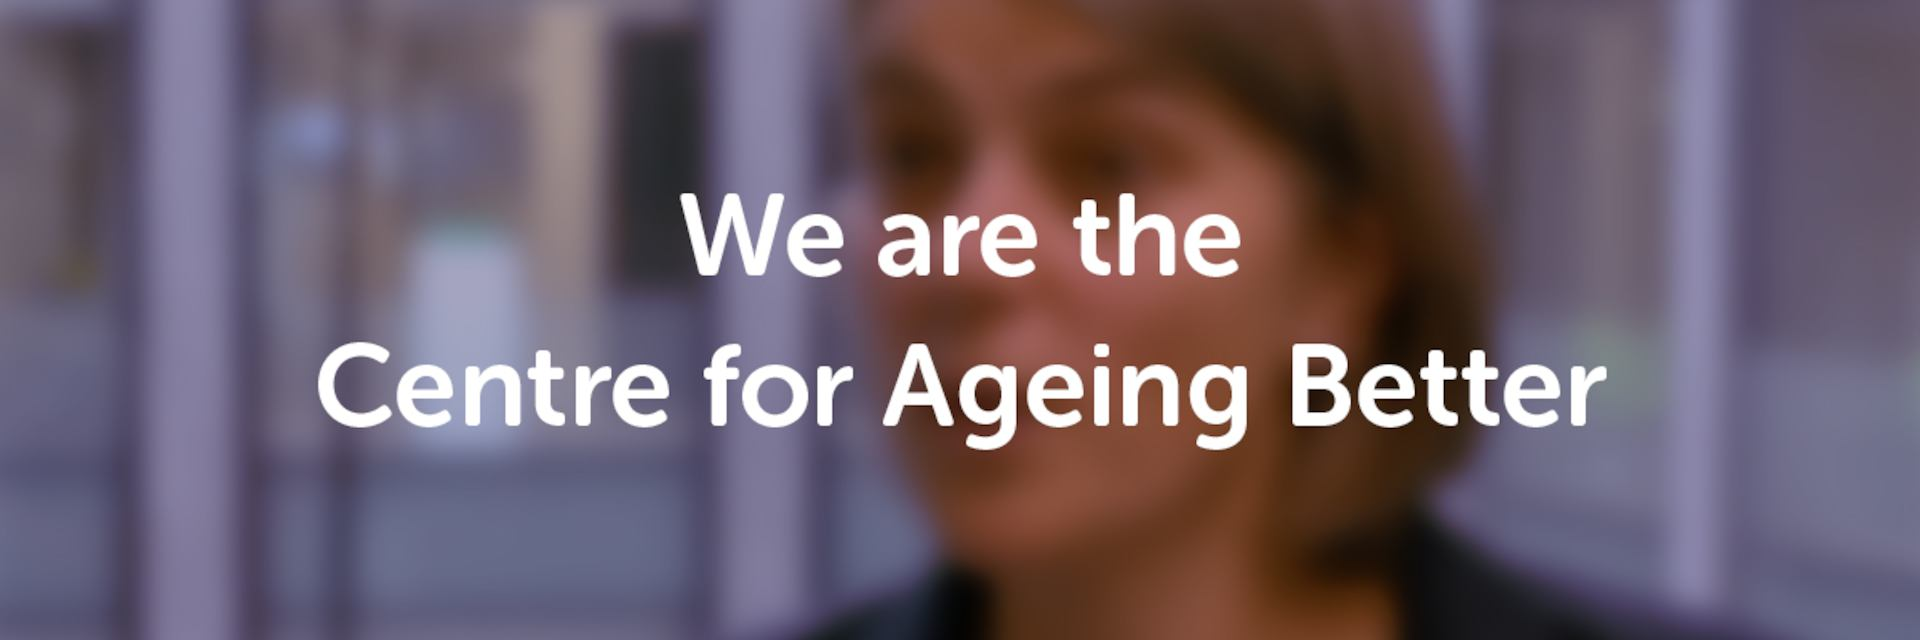 We are the Centre for Ageing Better